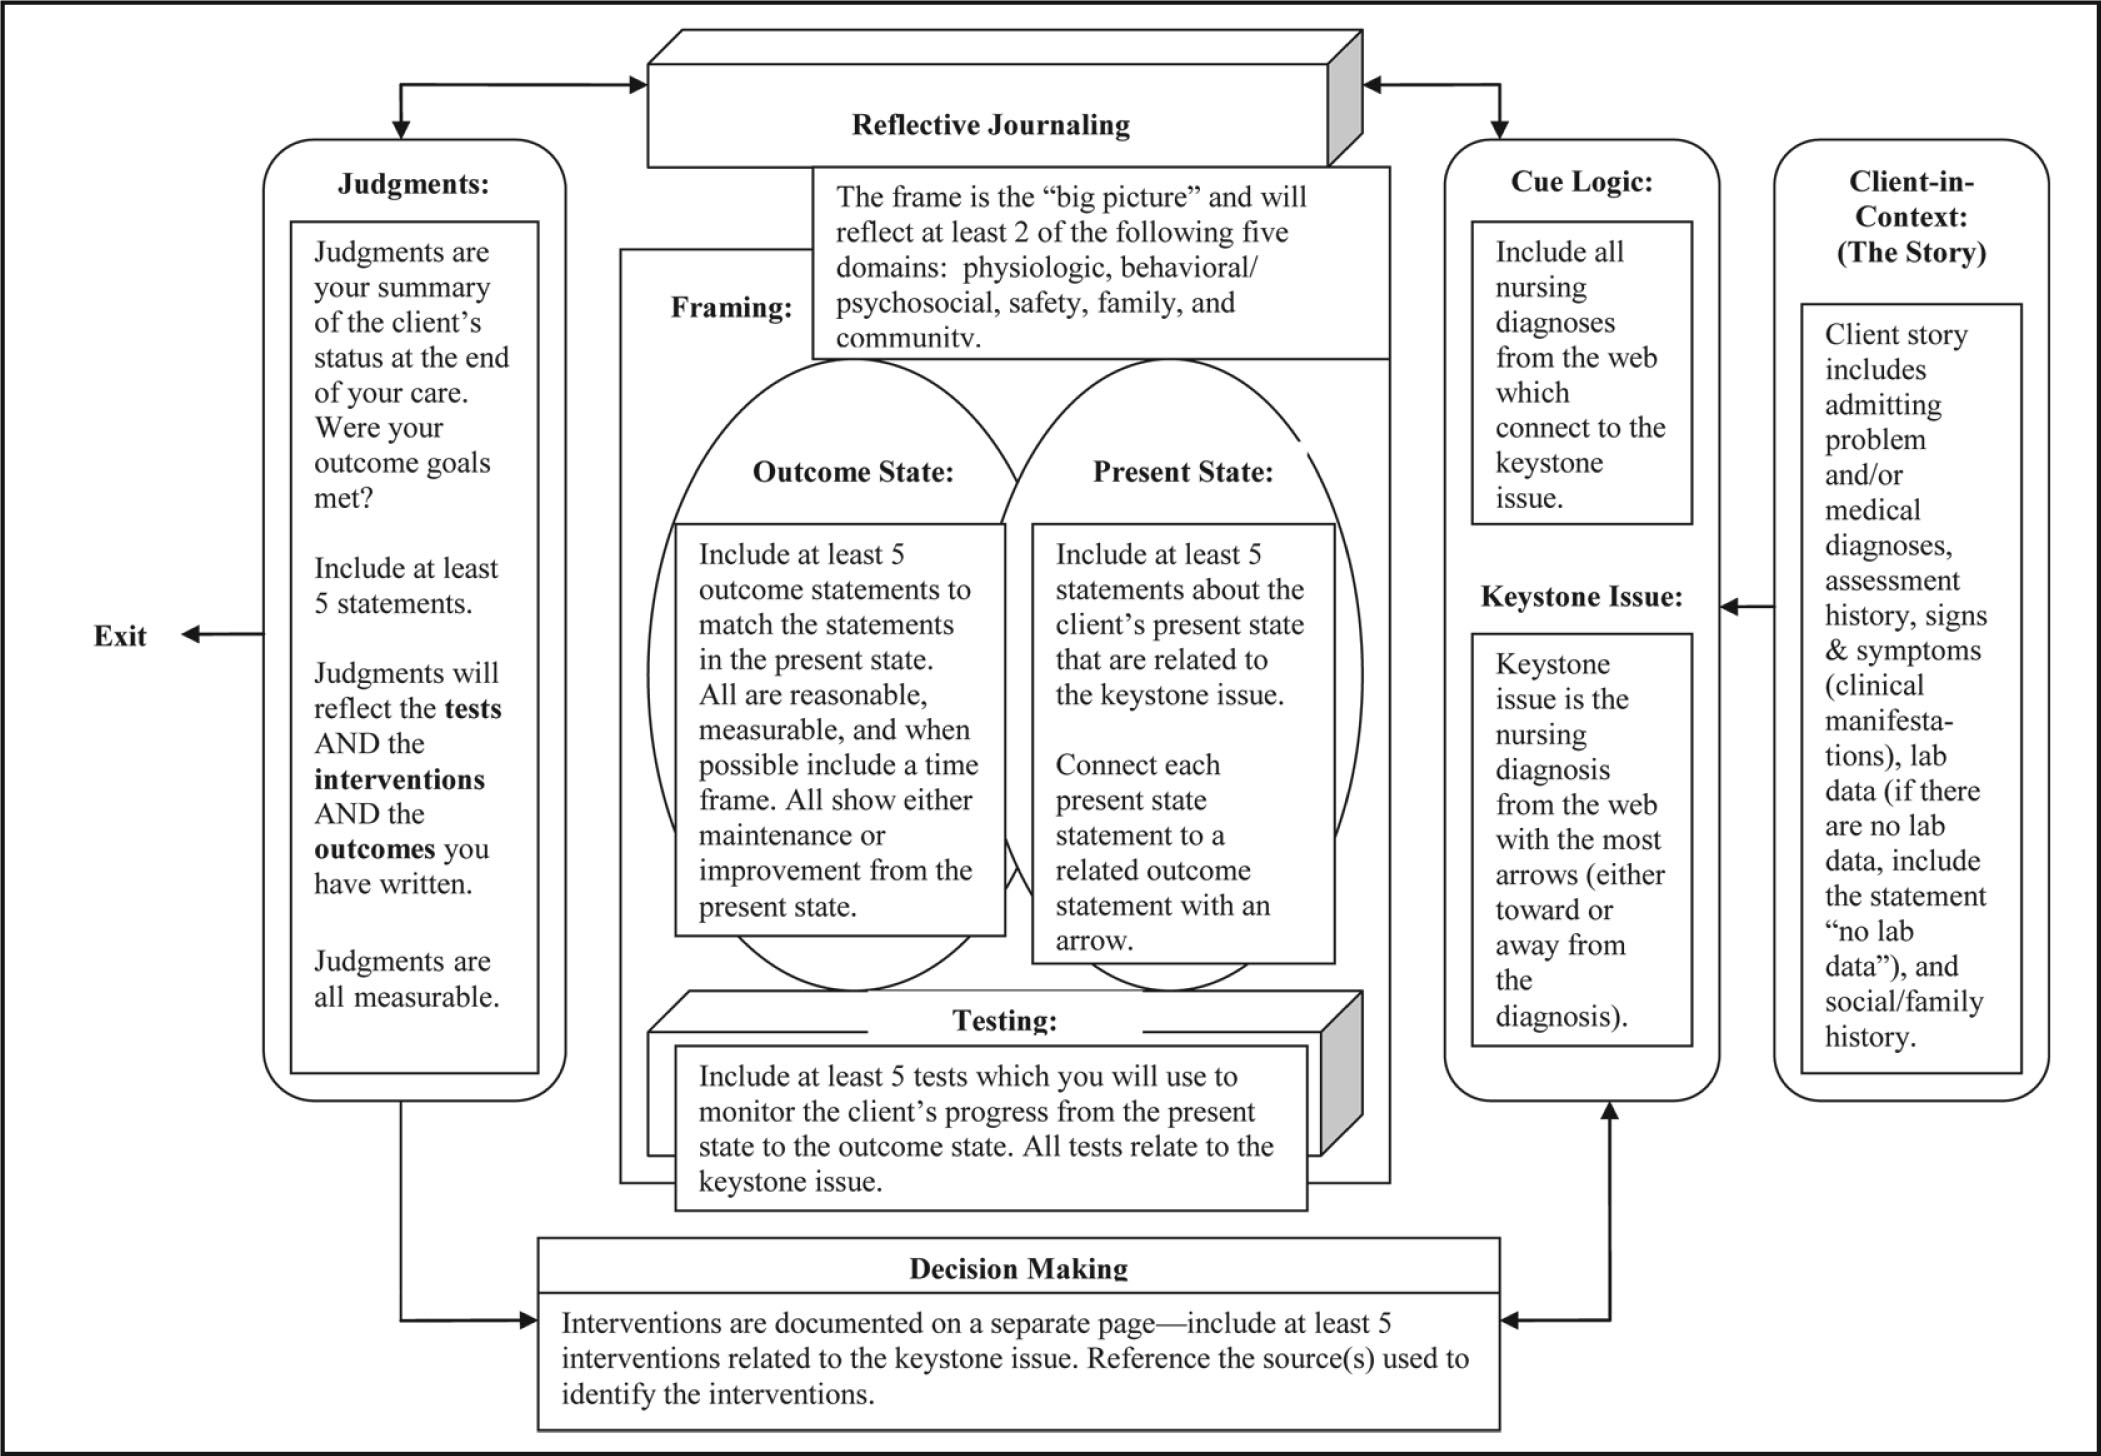 A Teaching Tool Developed by the Authors to Assist Students in Completing the Outcome-Present State Test Model (Pesut & Herman, 1999). the Criteria Faculty Use when Evaluating a Student's Work Are Provided.